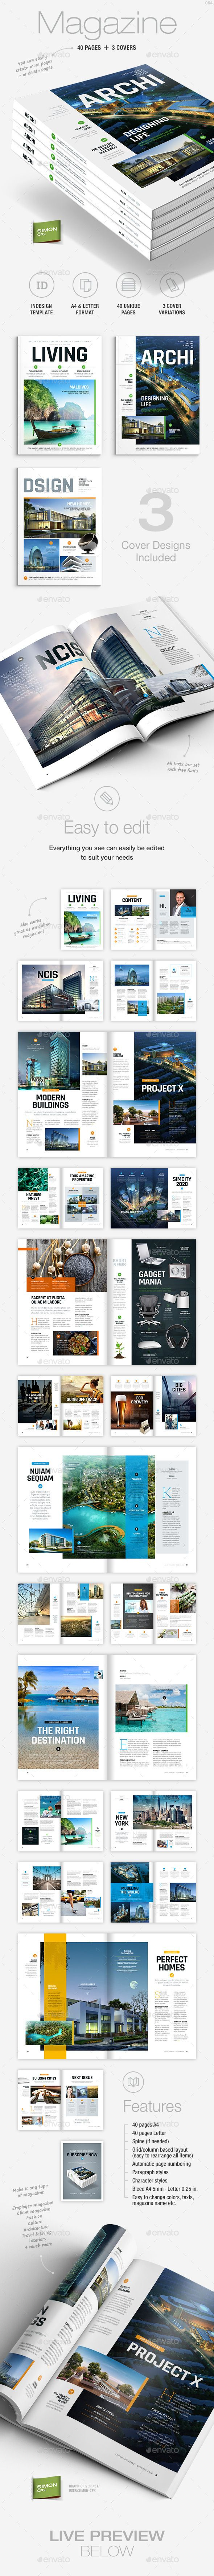 Best Magazine  Grids  Templates Images On